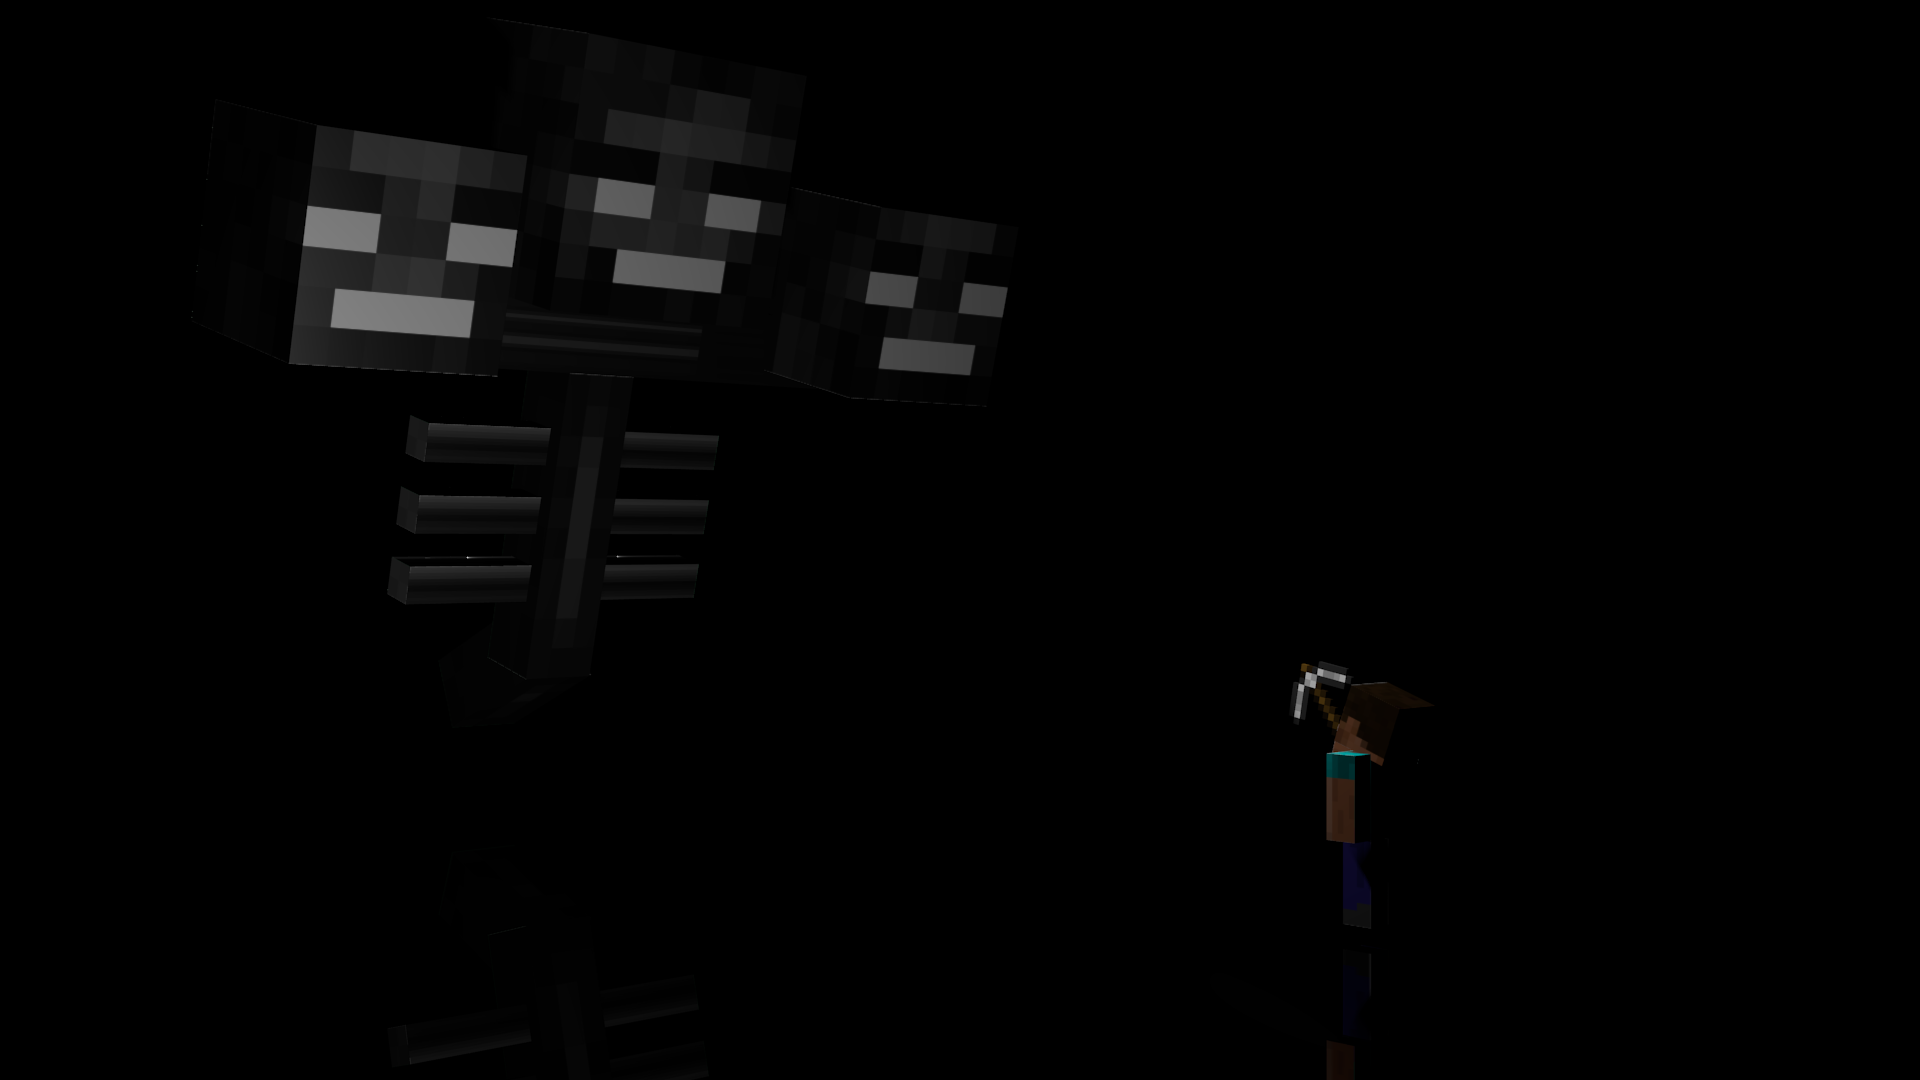 The Wither Wallpaper Image